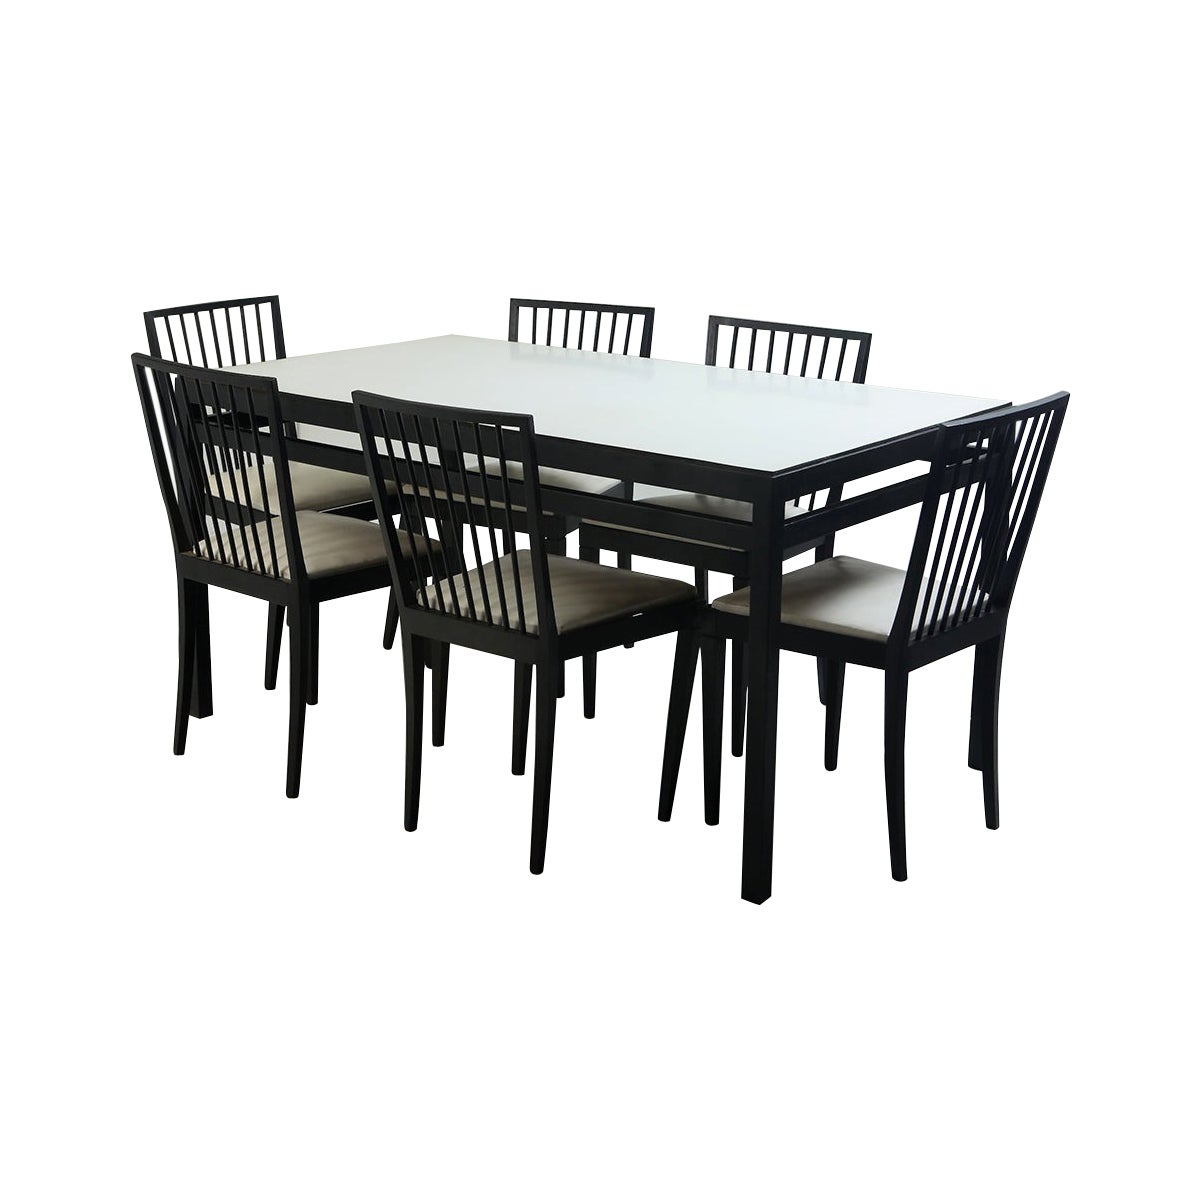 Mid-Century Modern Set of Dining Table and 6 Chairs by Móveis Flama, Brazil